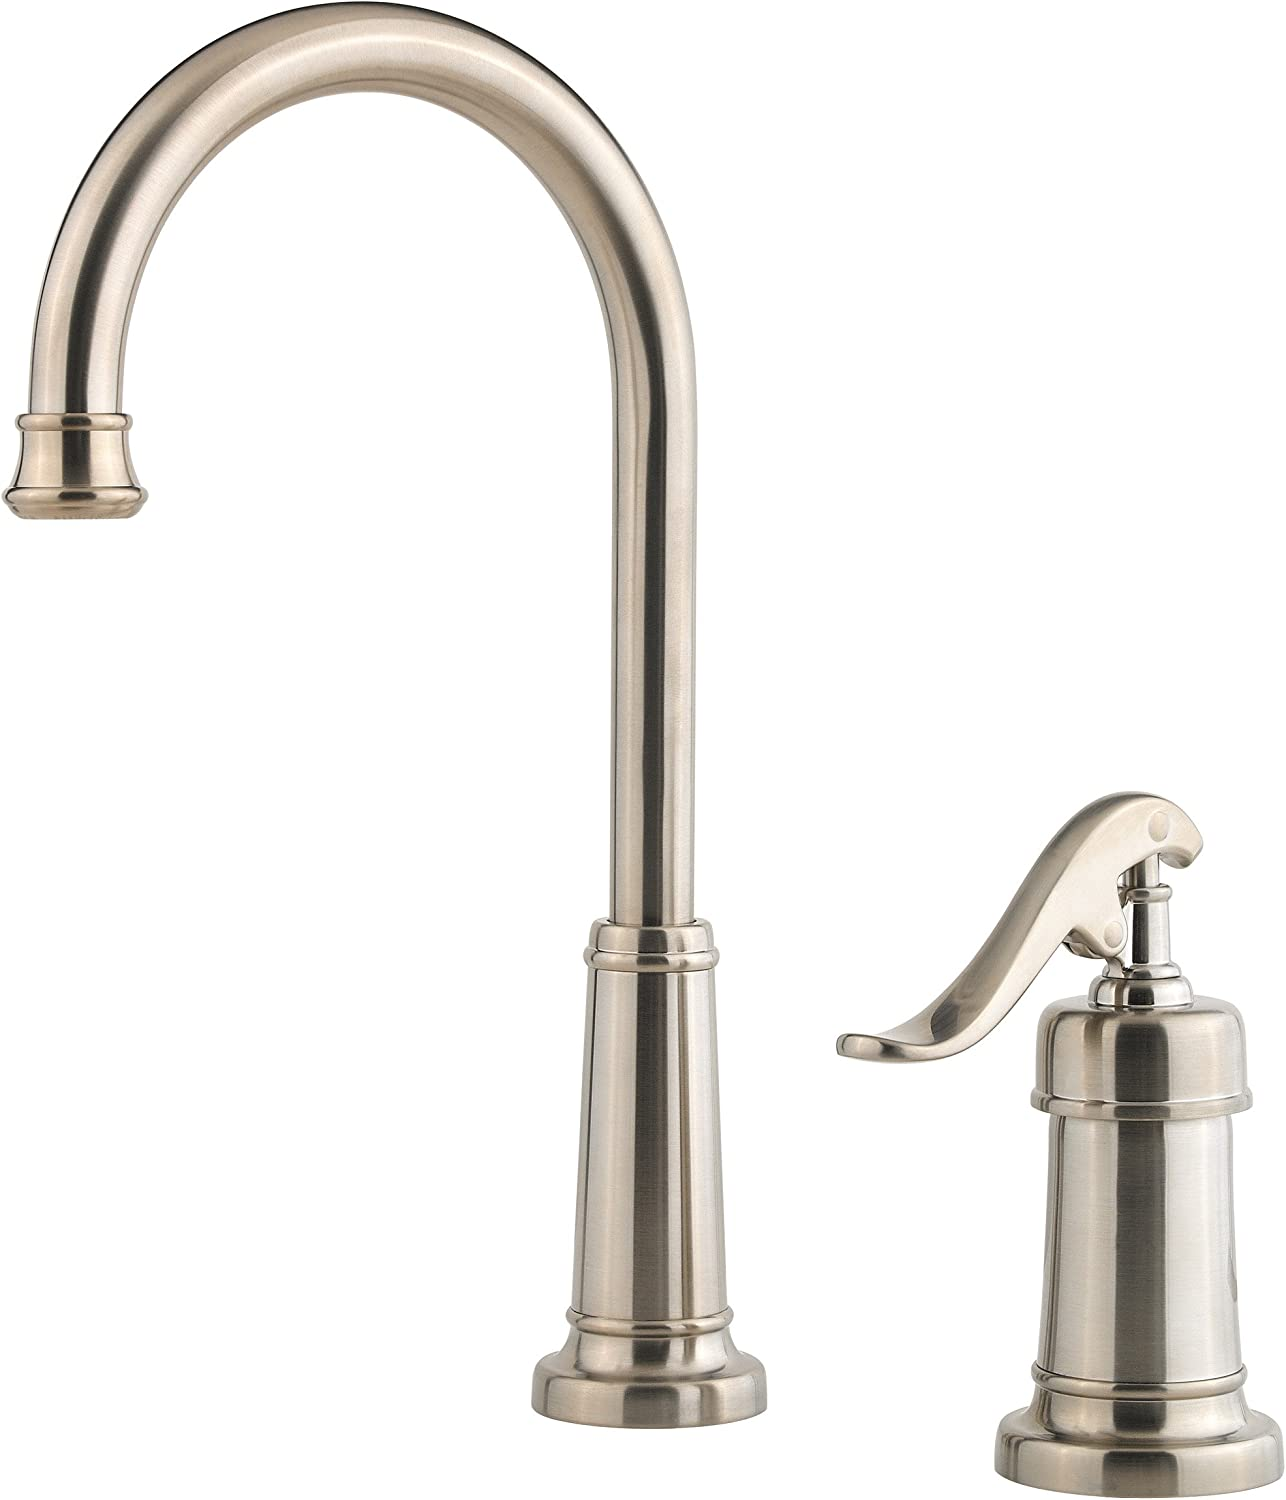 Pfister LG72-YP2K Ashfield 1-Handle Bar Prep Kitchen Faucet in Brushed Nickel, 1.8gpm